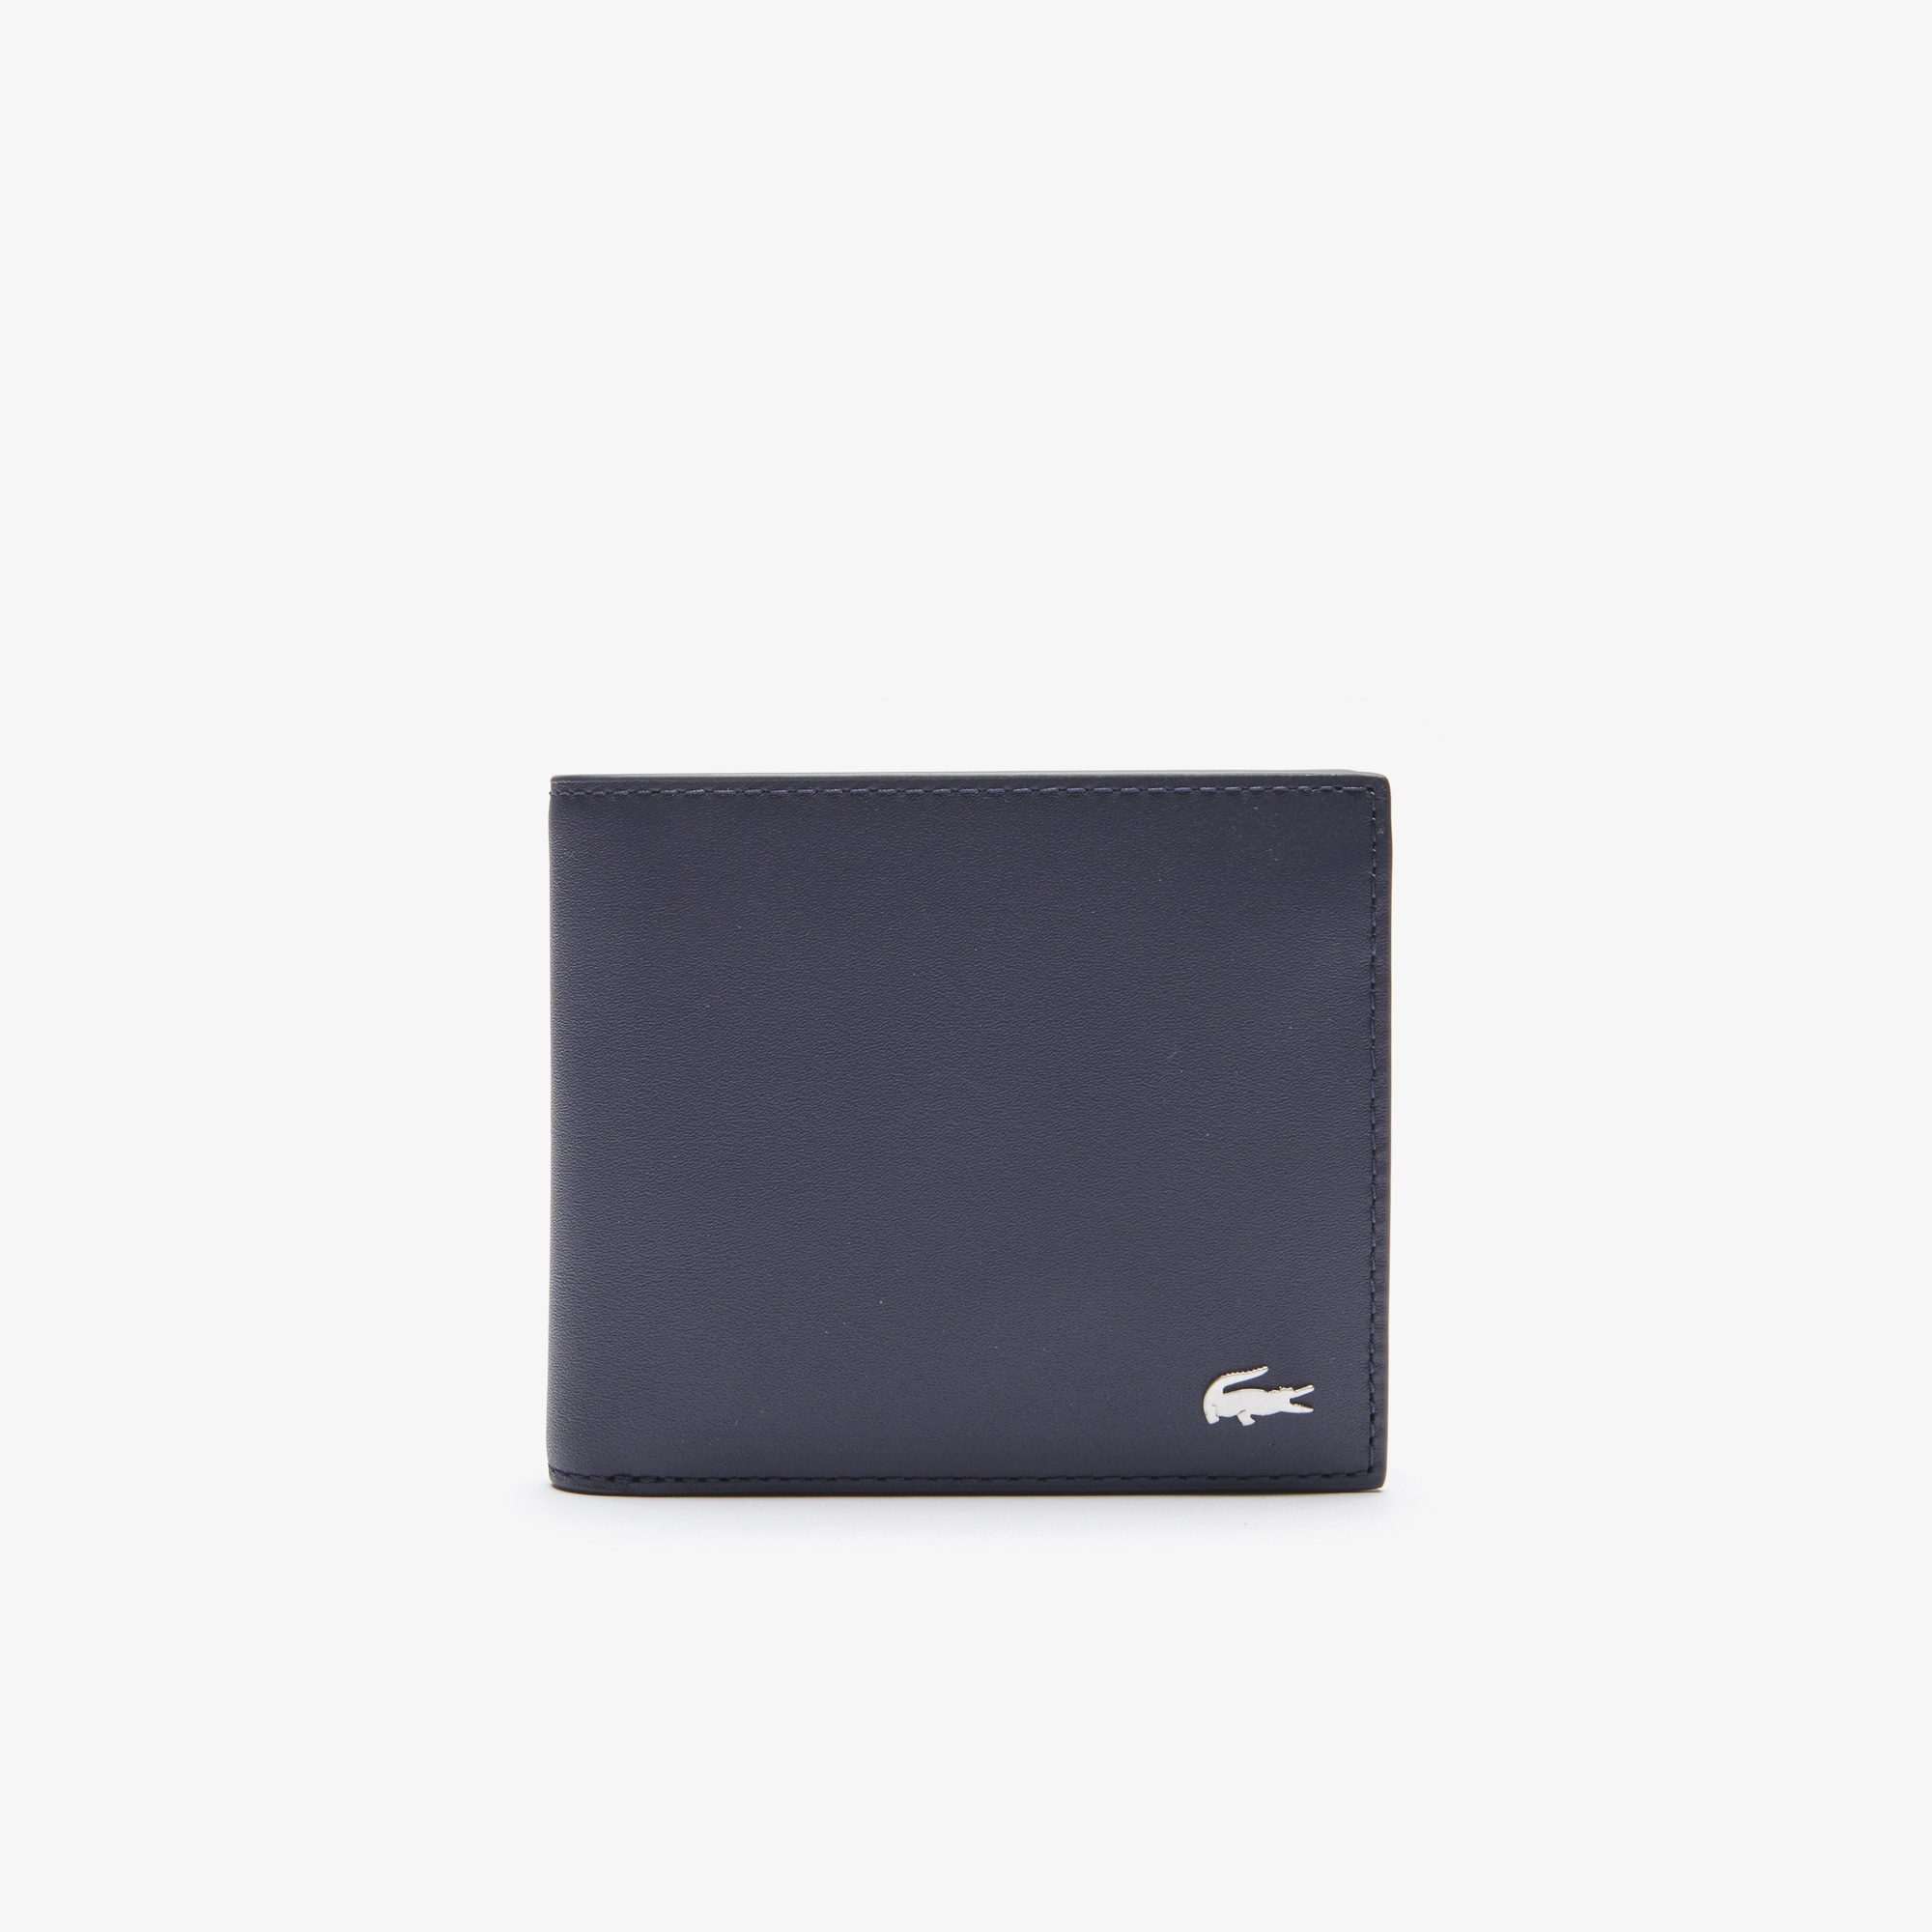 FG LARGE BILLFOLD WITH COIN POCKET